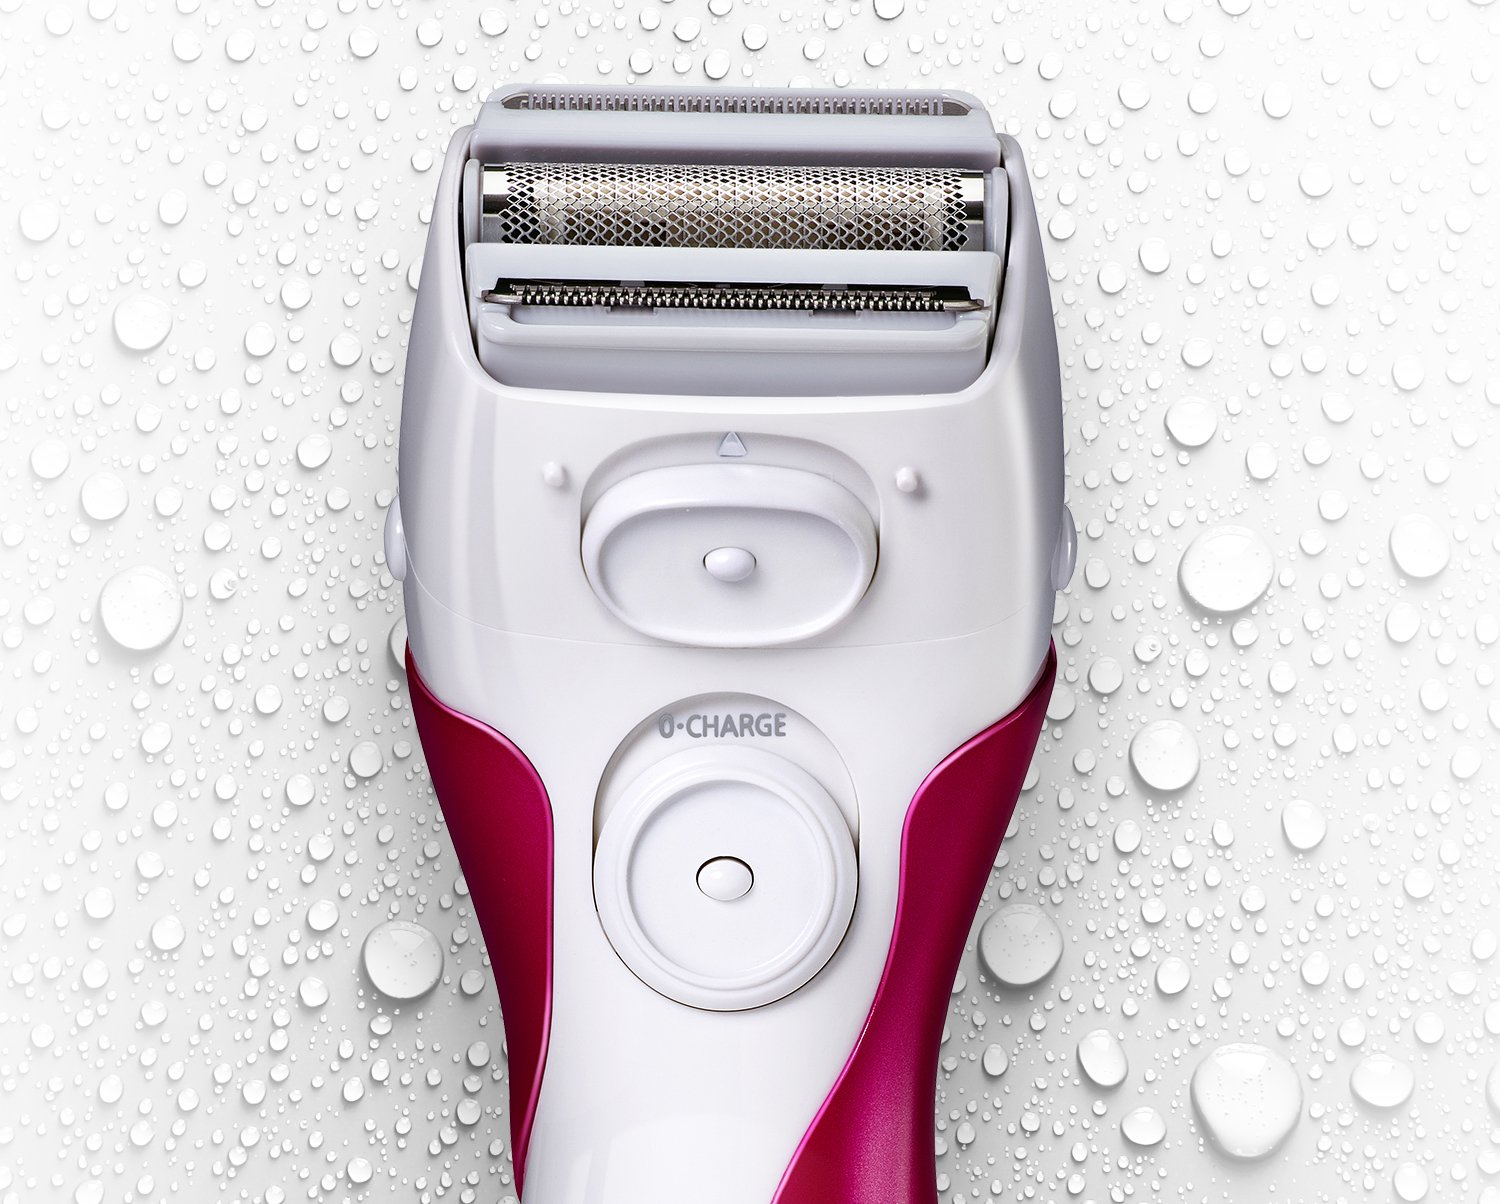 Best Pubic Hair Trimmer For Sensitive Skin 2018 Reviews And Ratings Philips Epilator Bre630 Electric Lady Shaver Shaving Wet Dry Dual Stripper Panasonic Es2207p Ladies